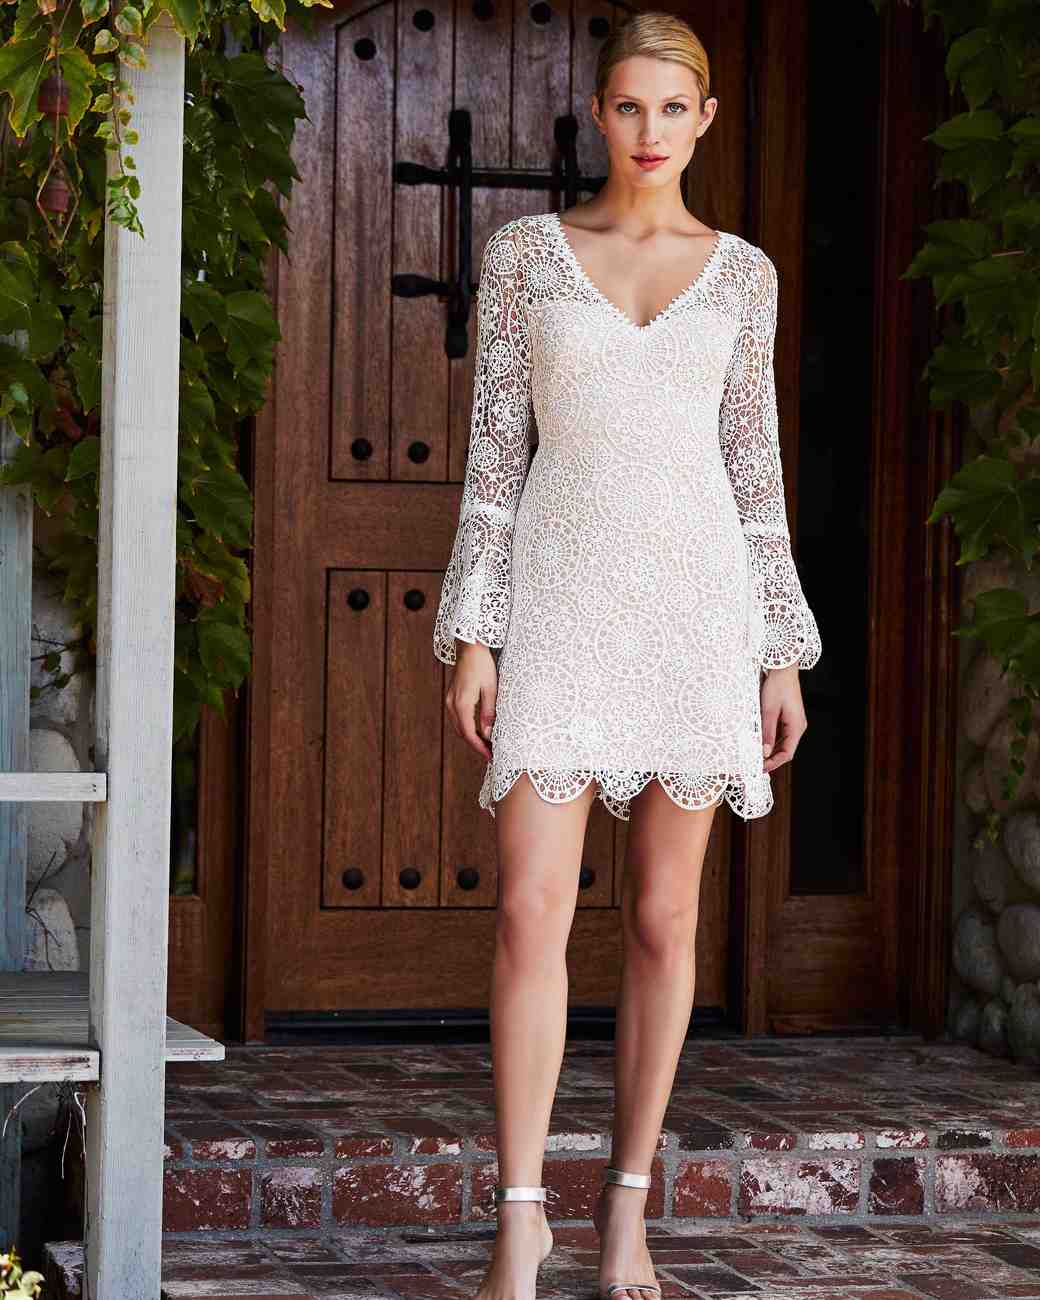 tadashi shoji wedding dress fall 2018 longsleeve lace mini